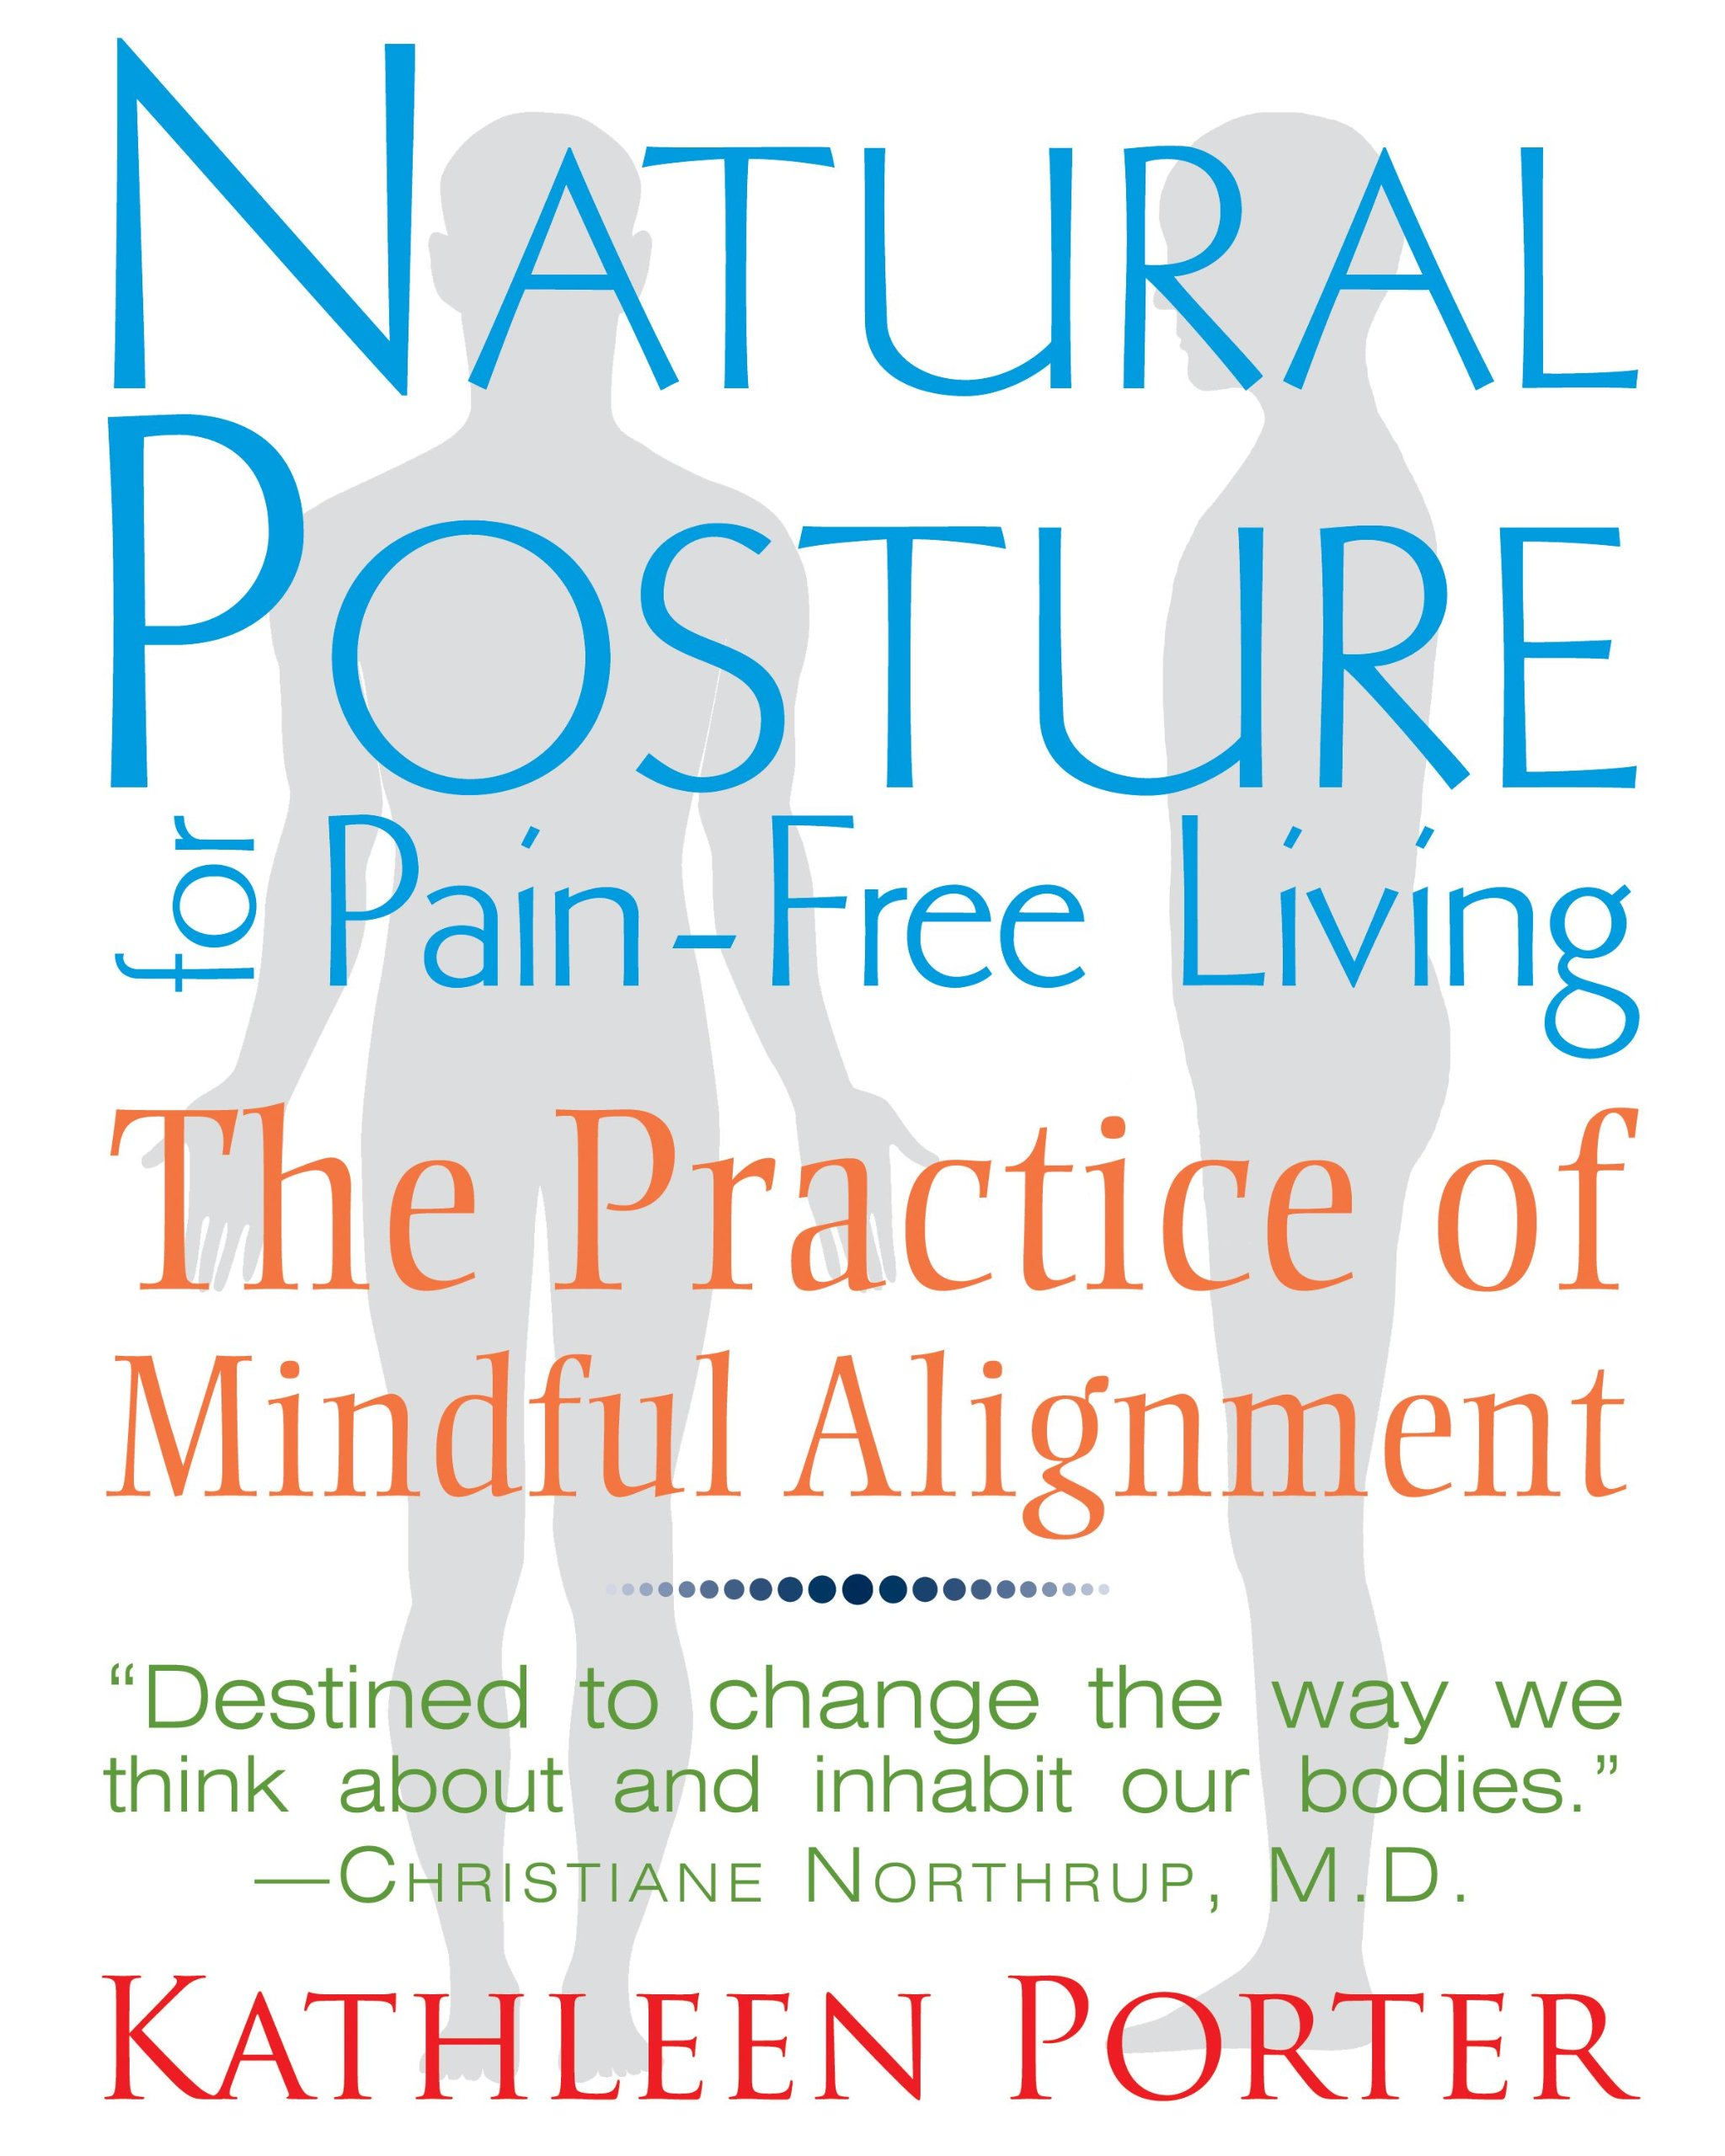 Natural Posture Pain Free Living Alignment product image